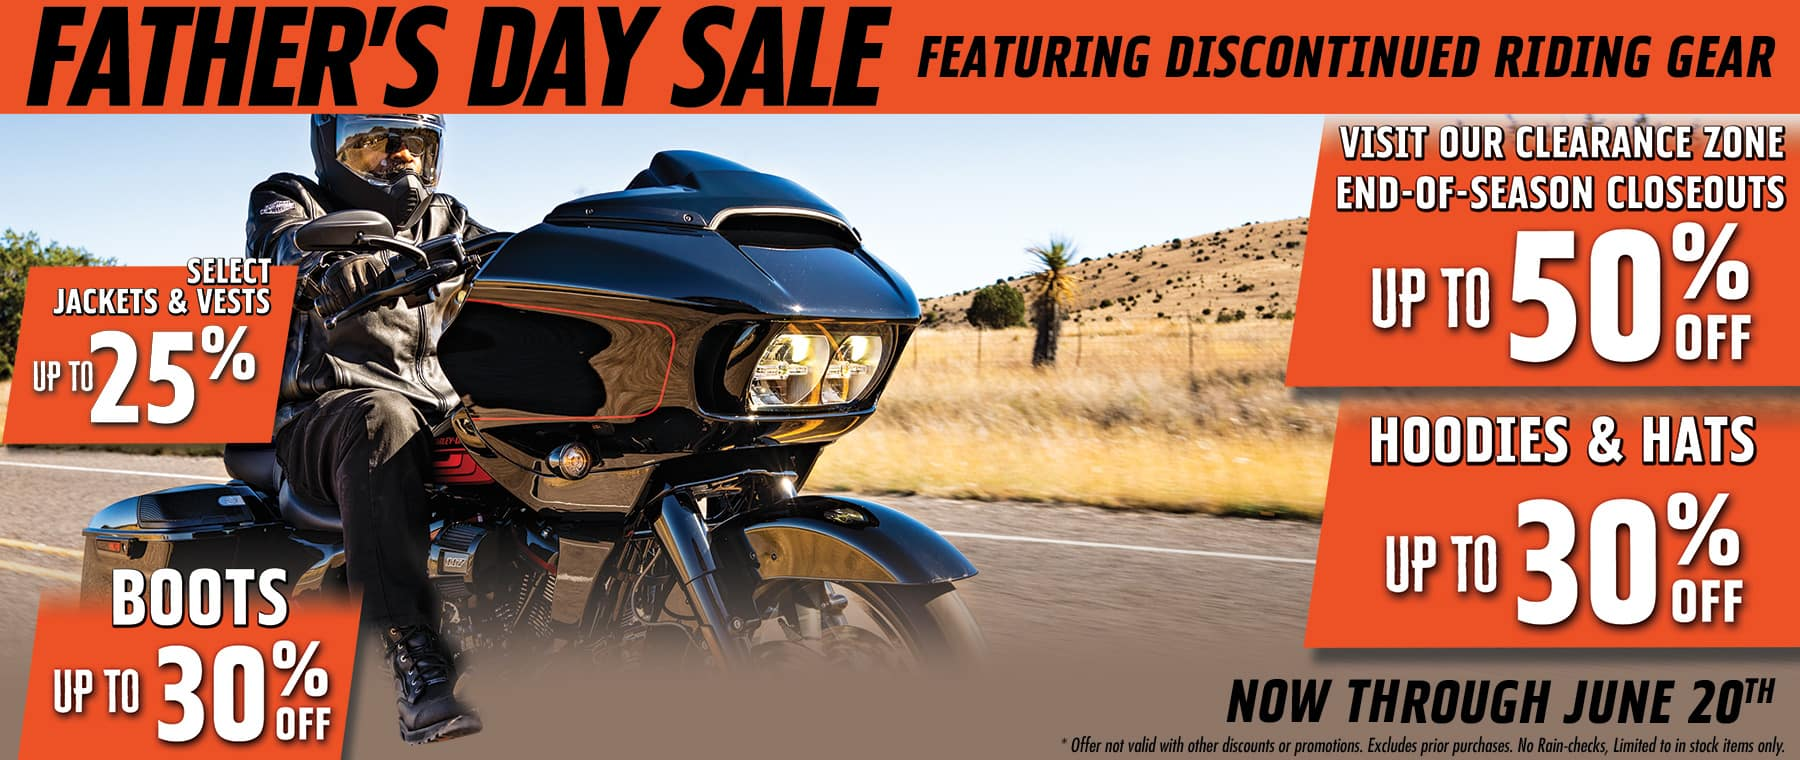 Fathers-day-discontinued-motorclothes-SVHD